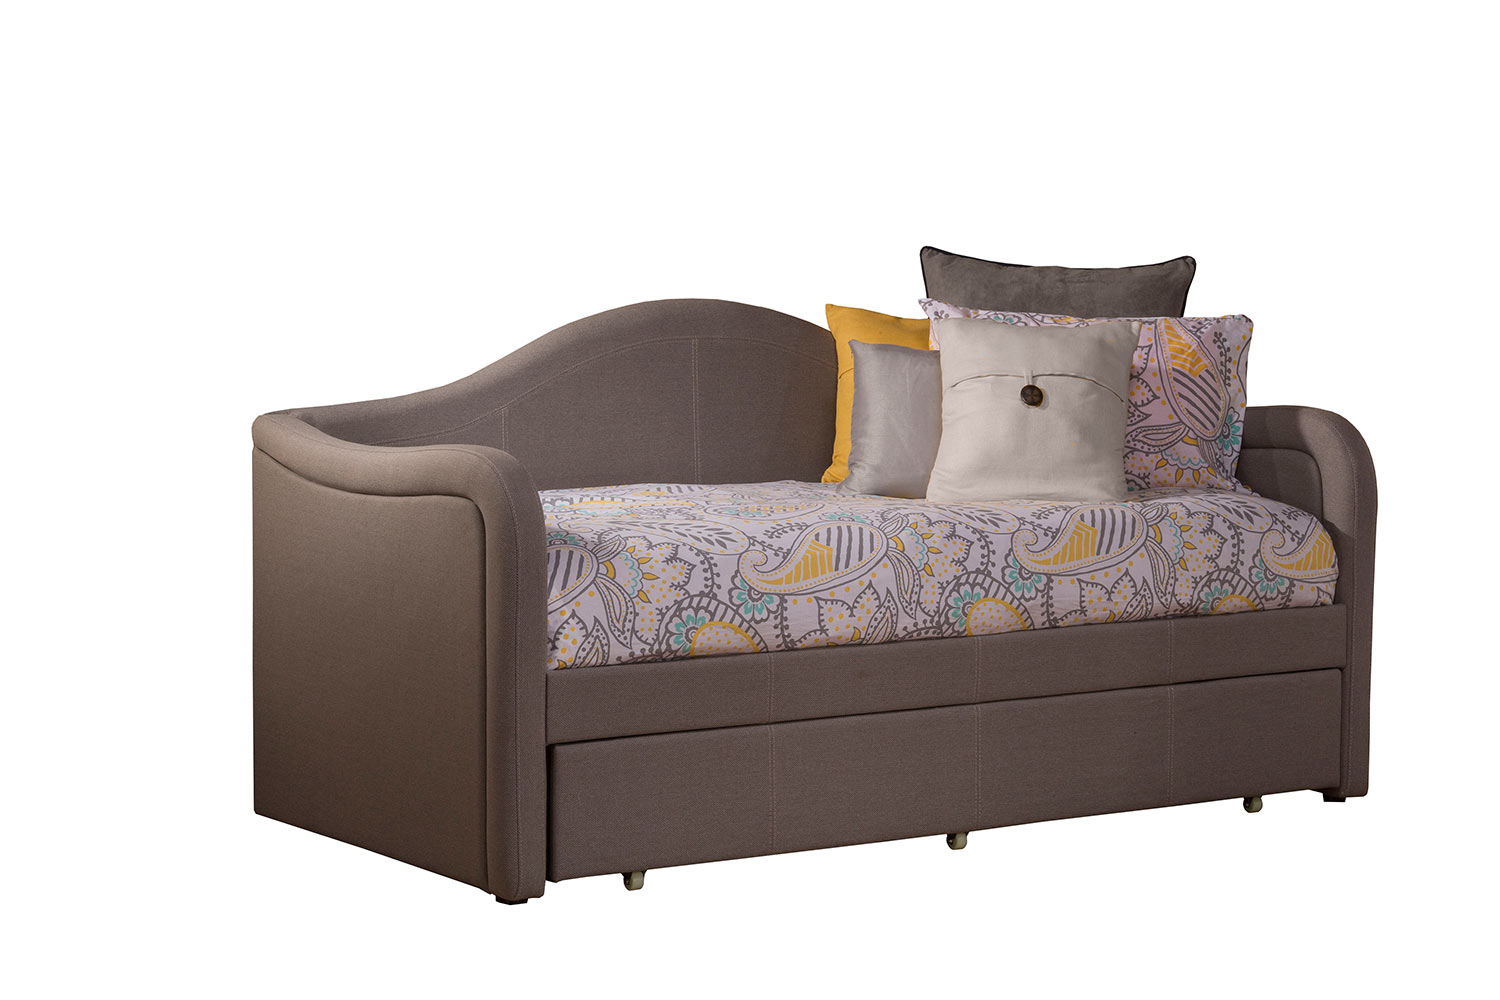 Hillsdale Porter Daybed with Trundle Unit